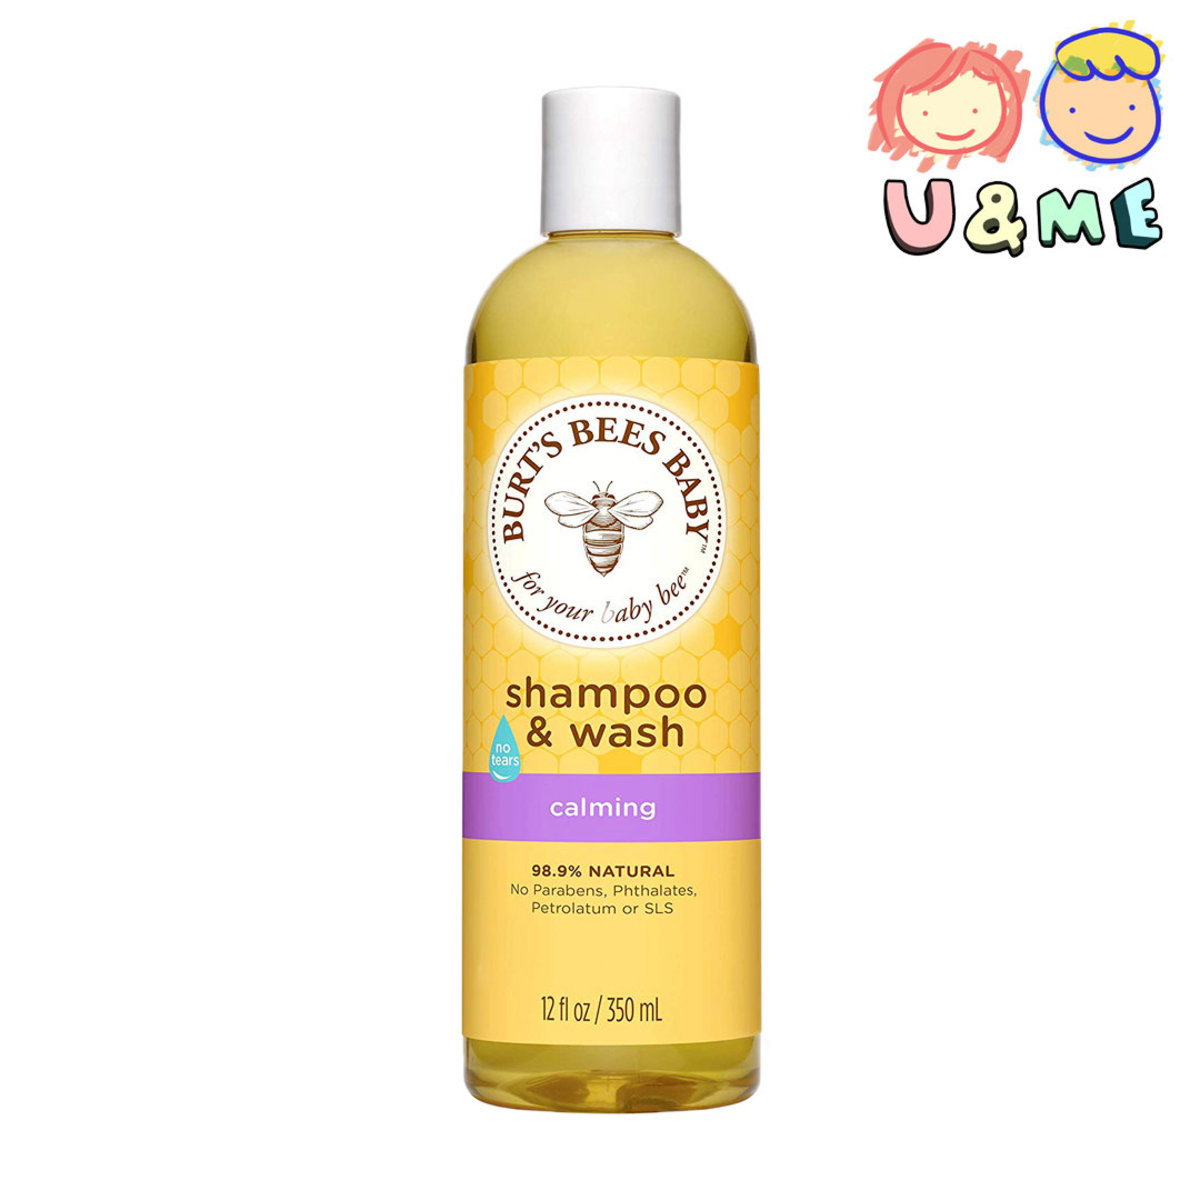 Baby Bee Shampoo & Wash 350 ml - Calming (Parallel Import)